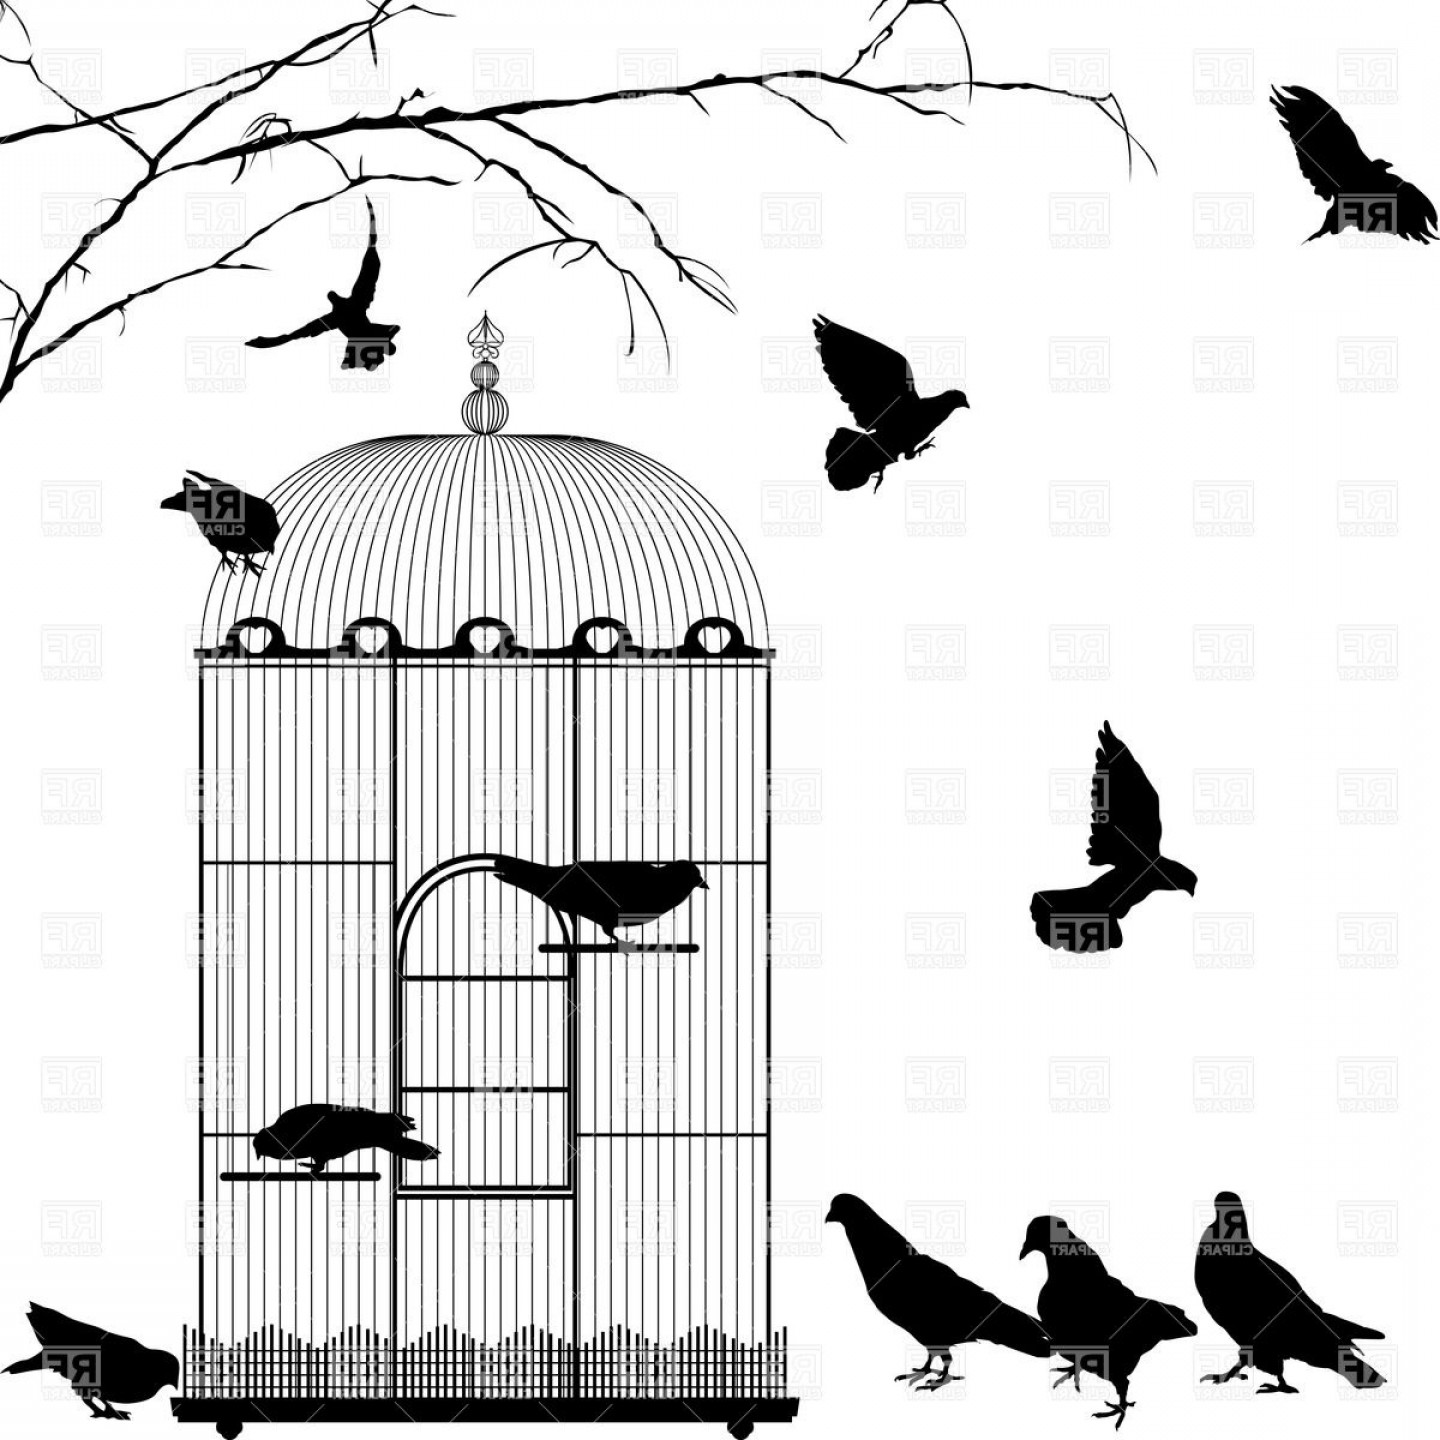 Birdcage silhouette clipart image black and white download Birdcage And Silhouettes Of Birds Vector Clipart | GeekChicPro image black and white download